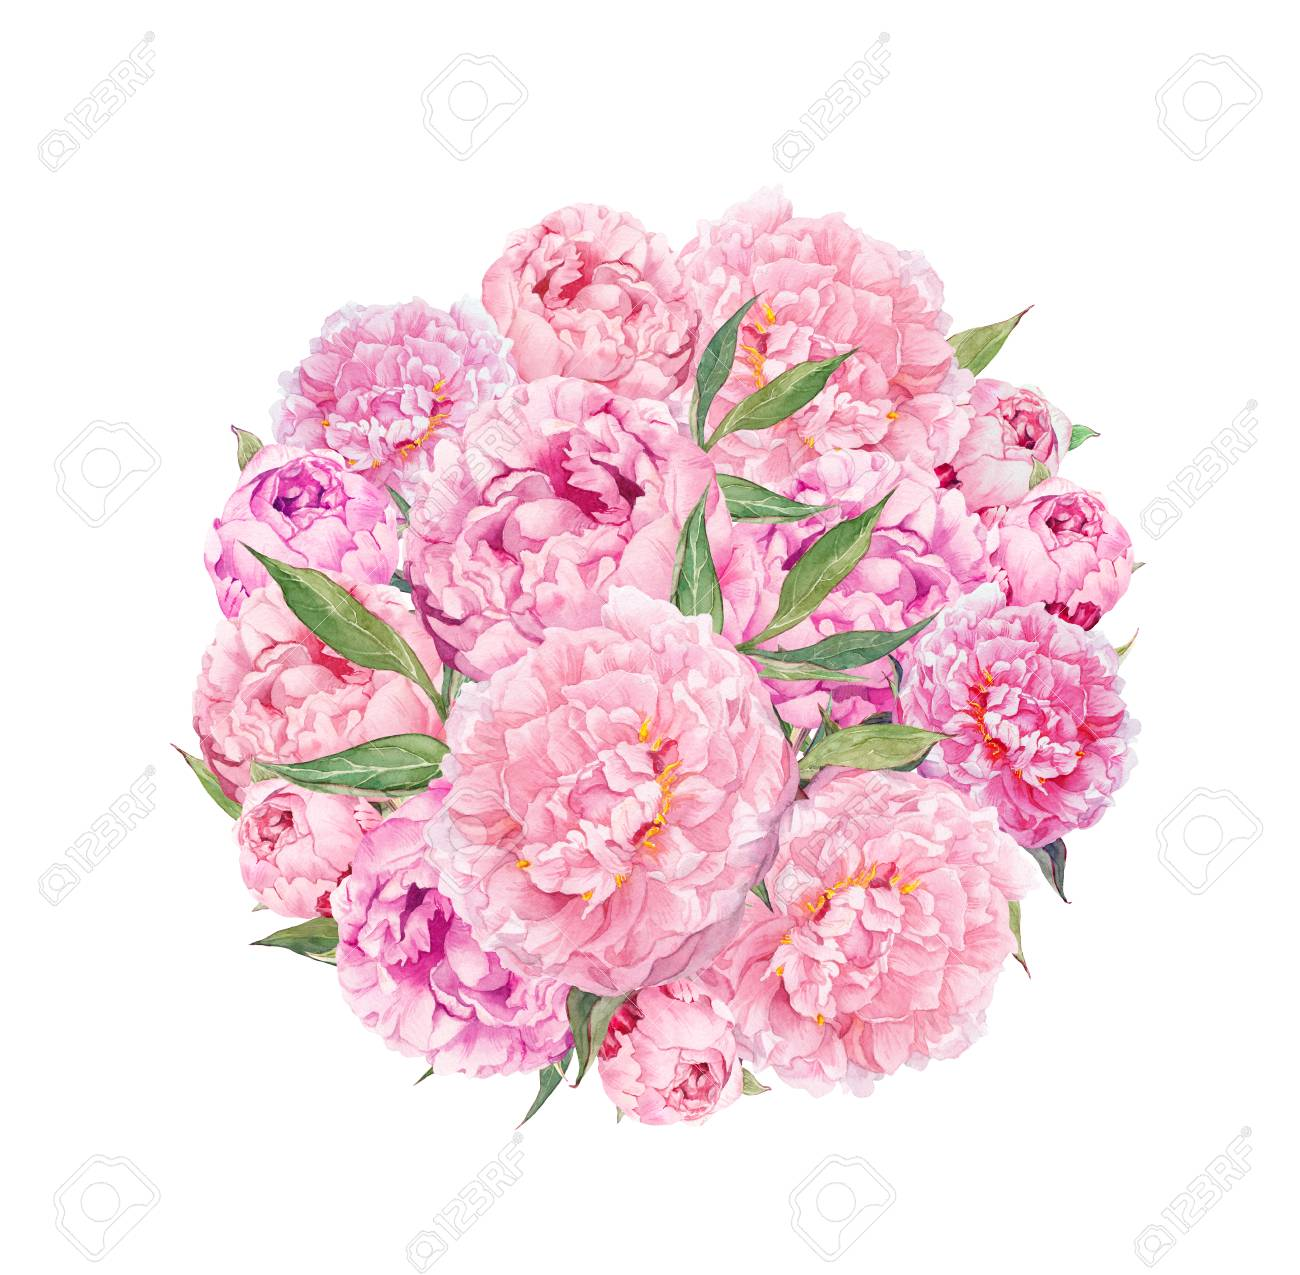 Floral Circle Background Pink Peony Flowers Watercolor Stock